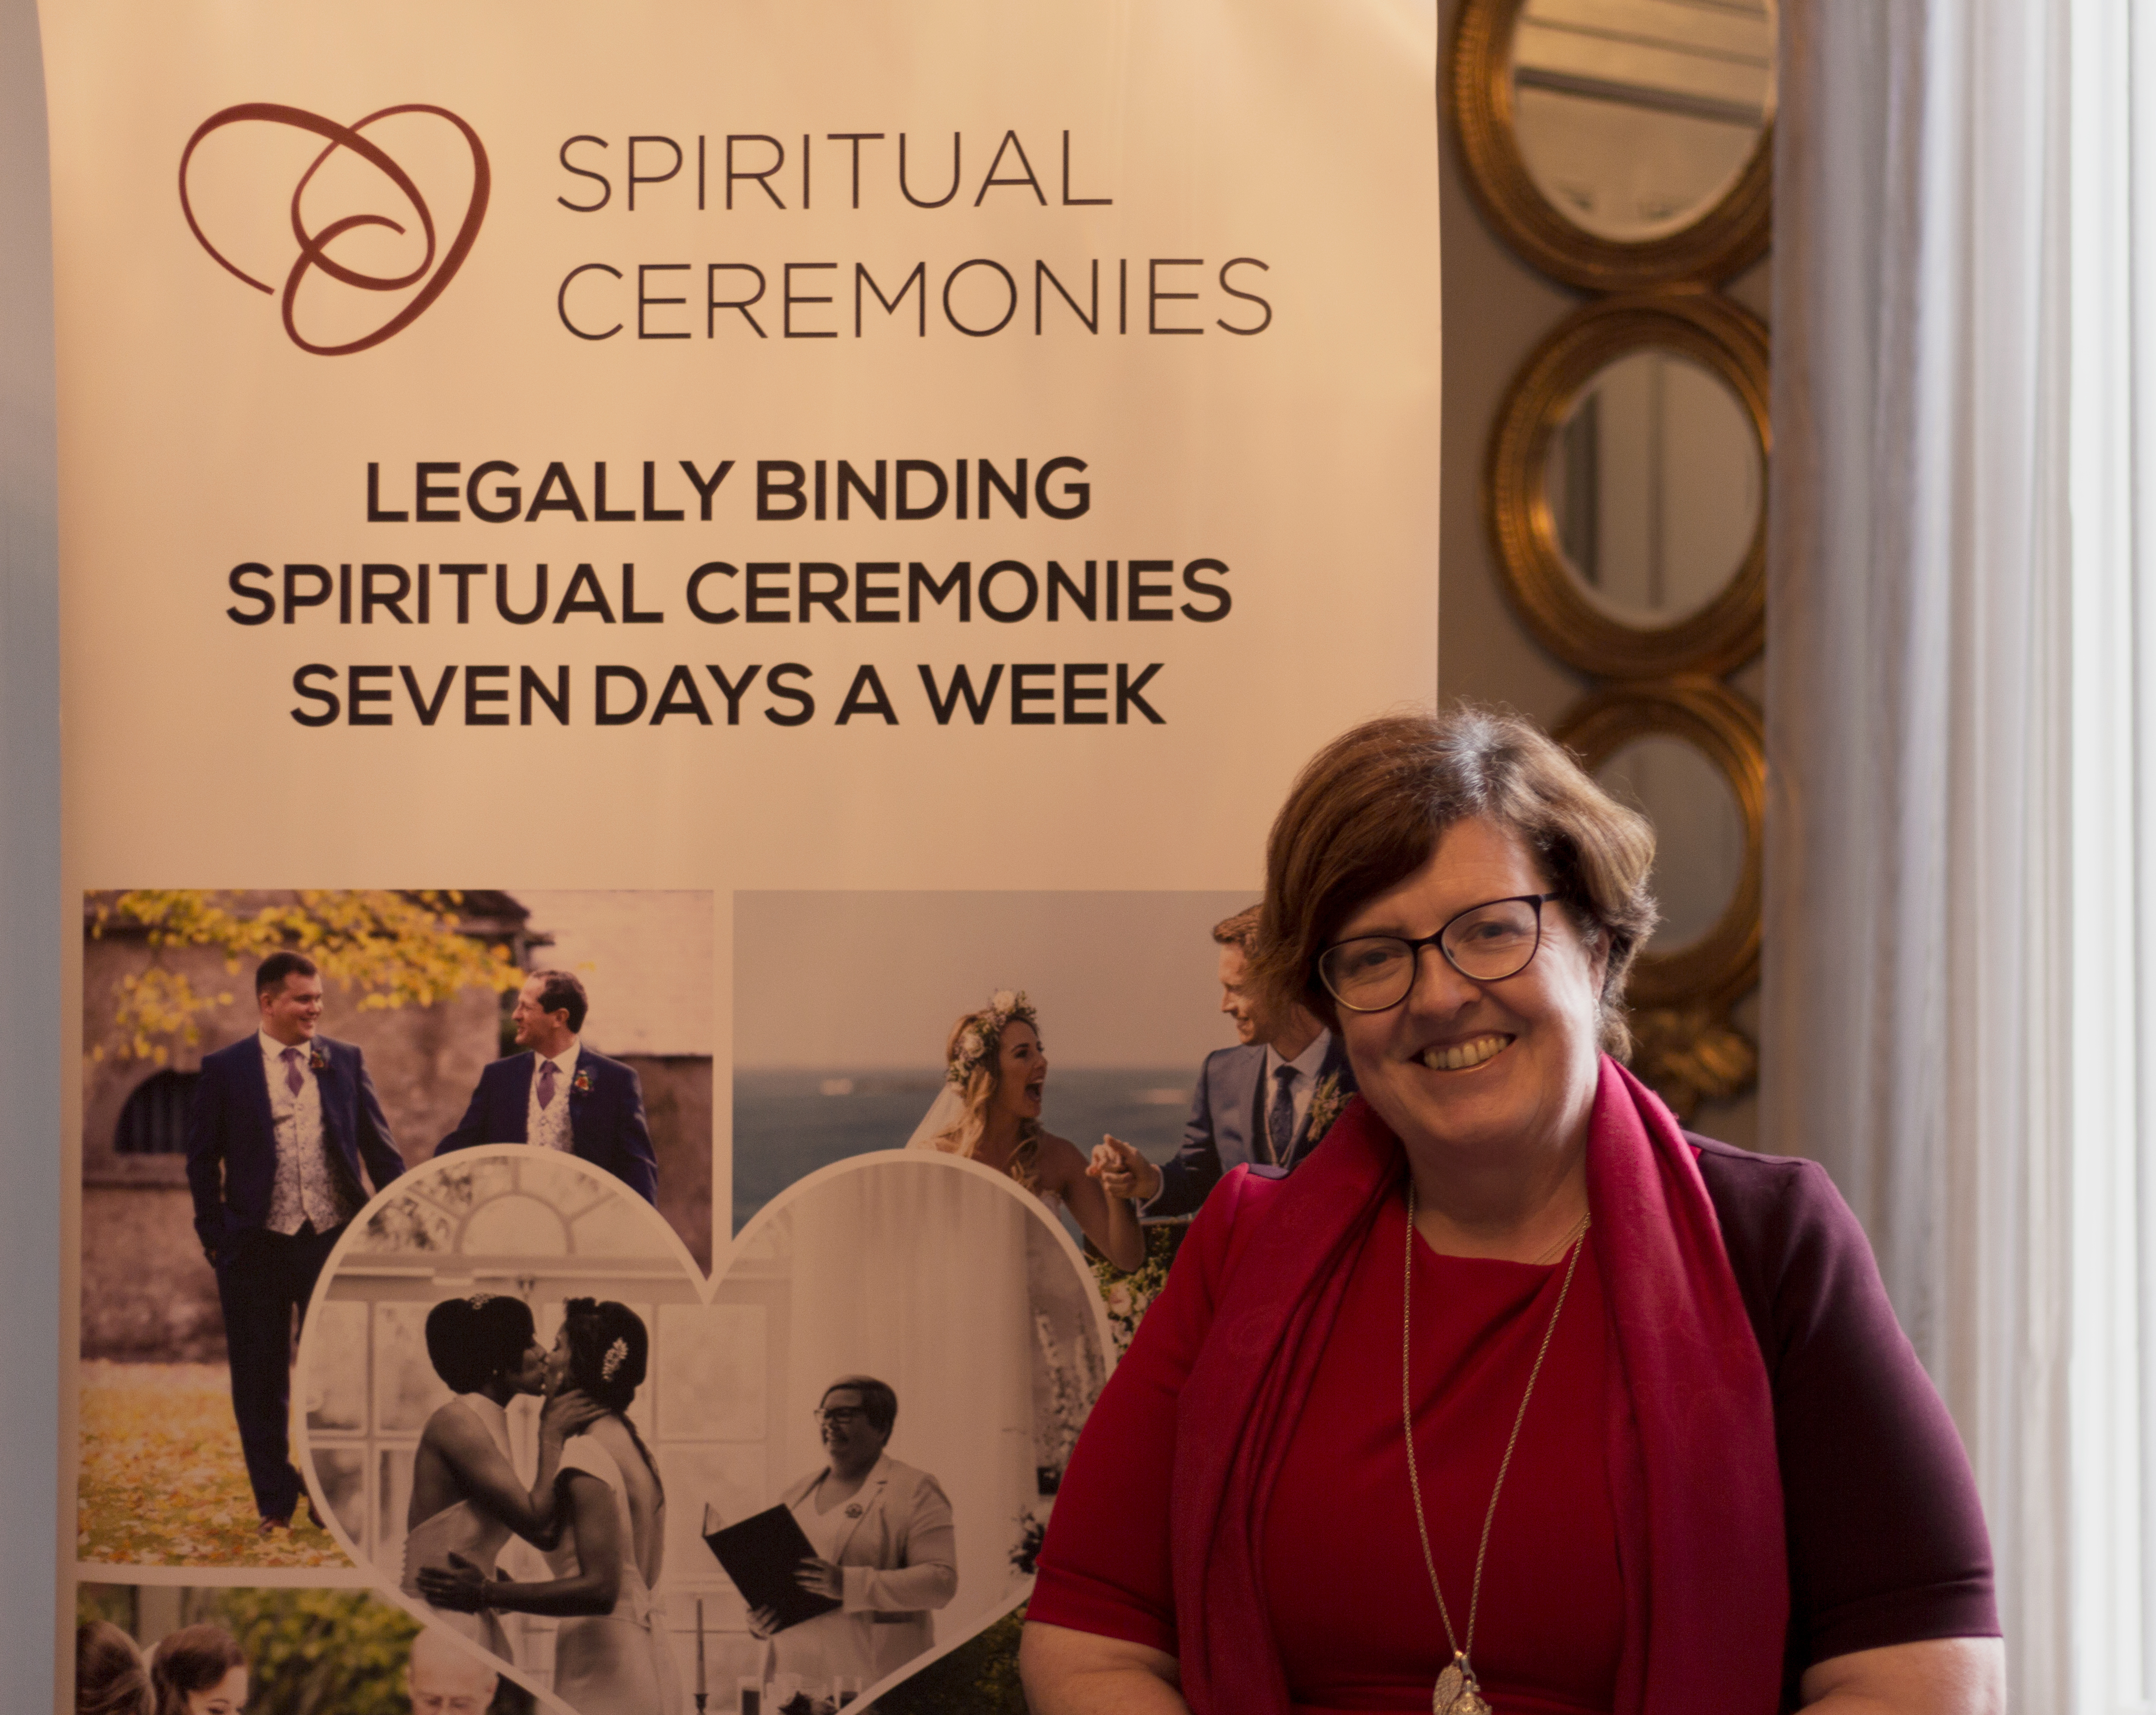 Berenice, Spiritual Ceremonies, No. 25 Autumn Open Evening, No 25 Fitzwilliam Place, weddings at No. 25 Fitzwilliam Place, Dublin Weddings. City Centre weddings